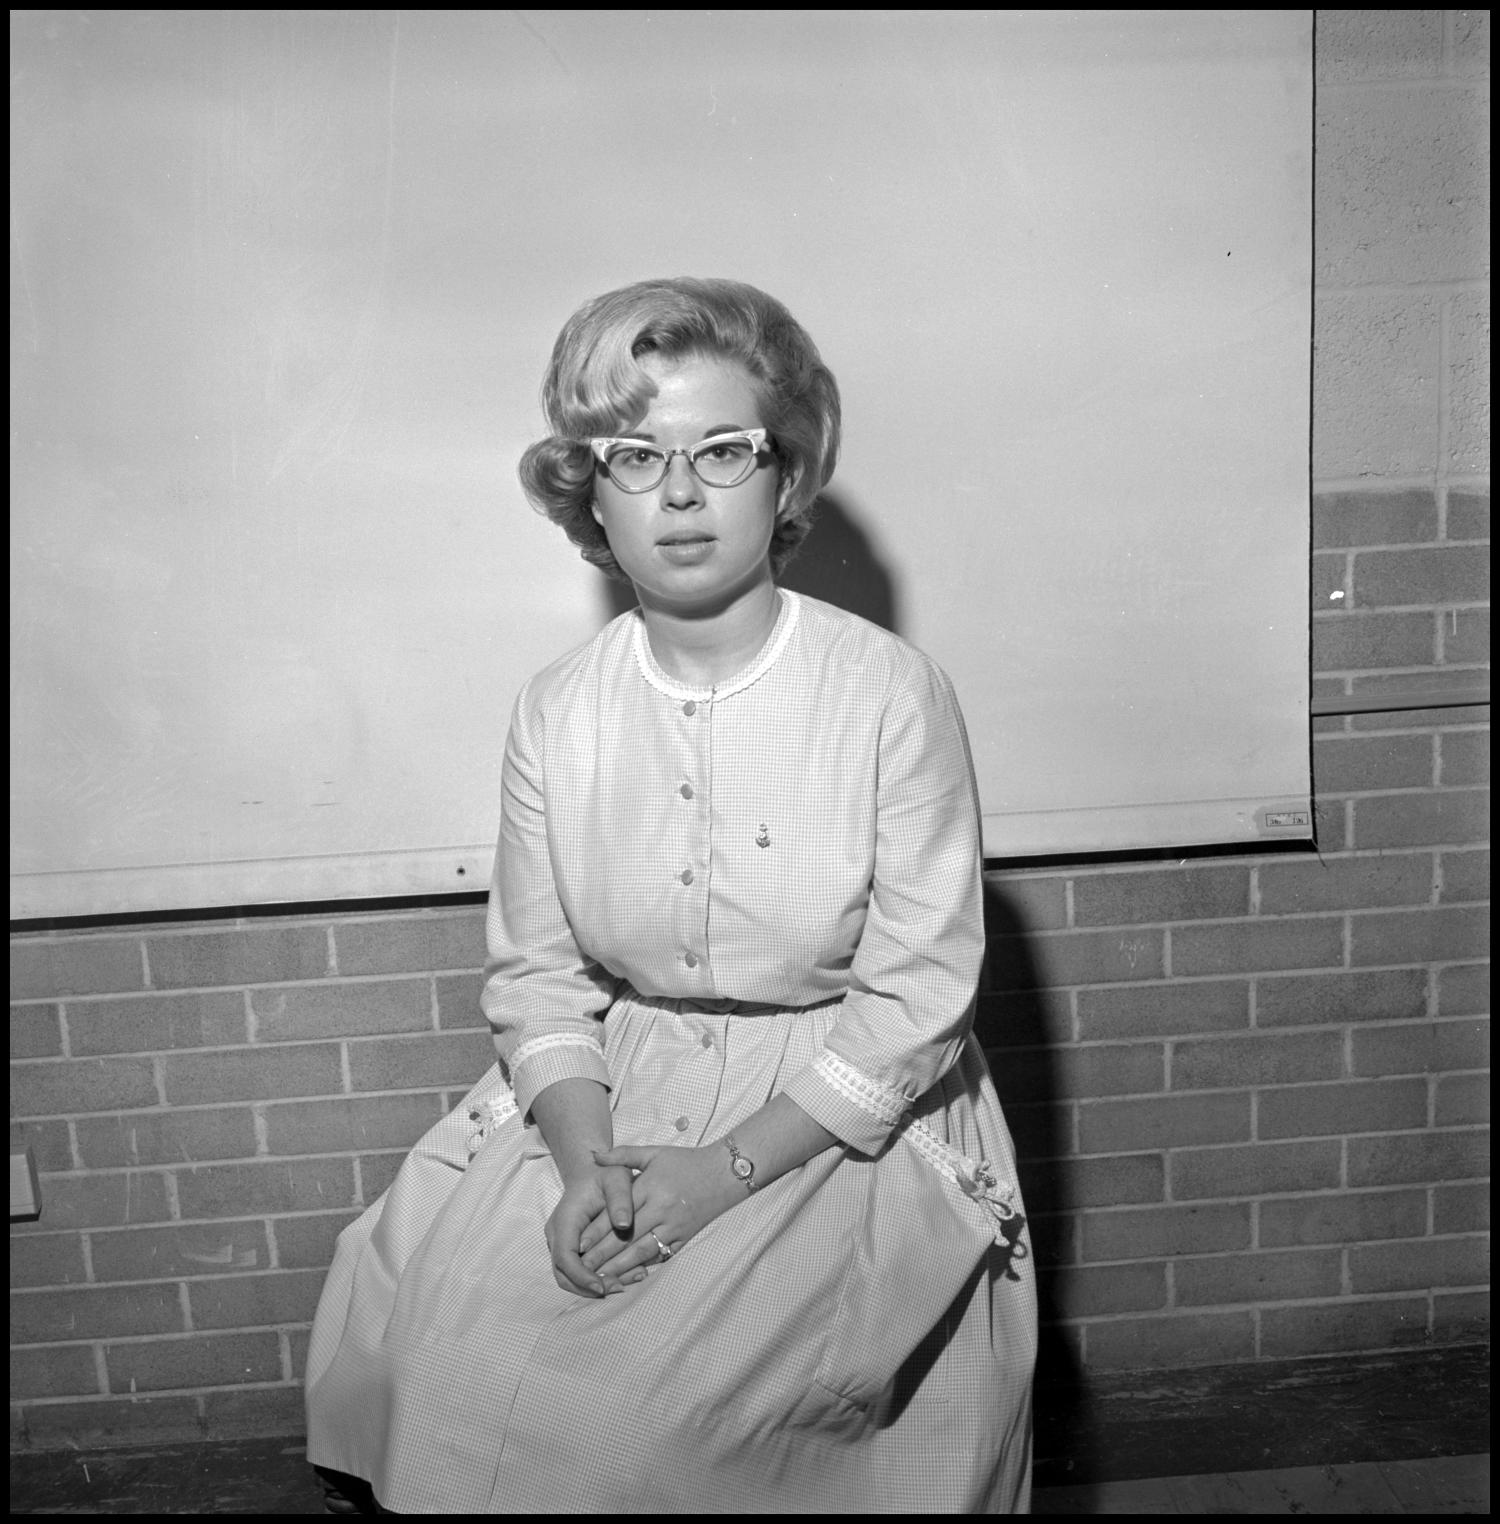 [Donna Butts portrait], Photograph of Donna Butts, a Speech and Drama major at NTSU, sitting for a portrait photo. She is wearing a dress with large pockets, trim around the collar, sleeves, and pocket tops, and buttons down the front. Her glasses are cat-eye style and she has a ring on her finger.,